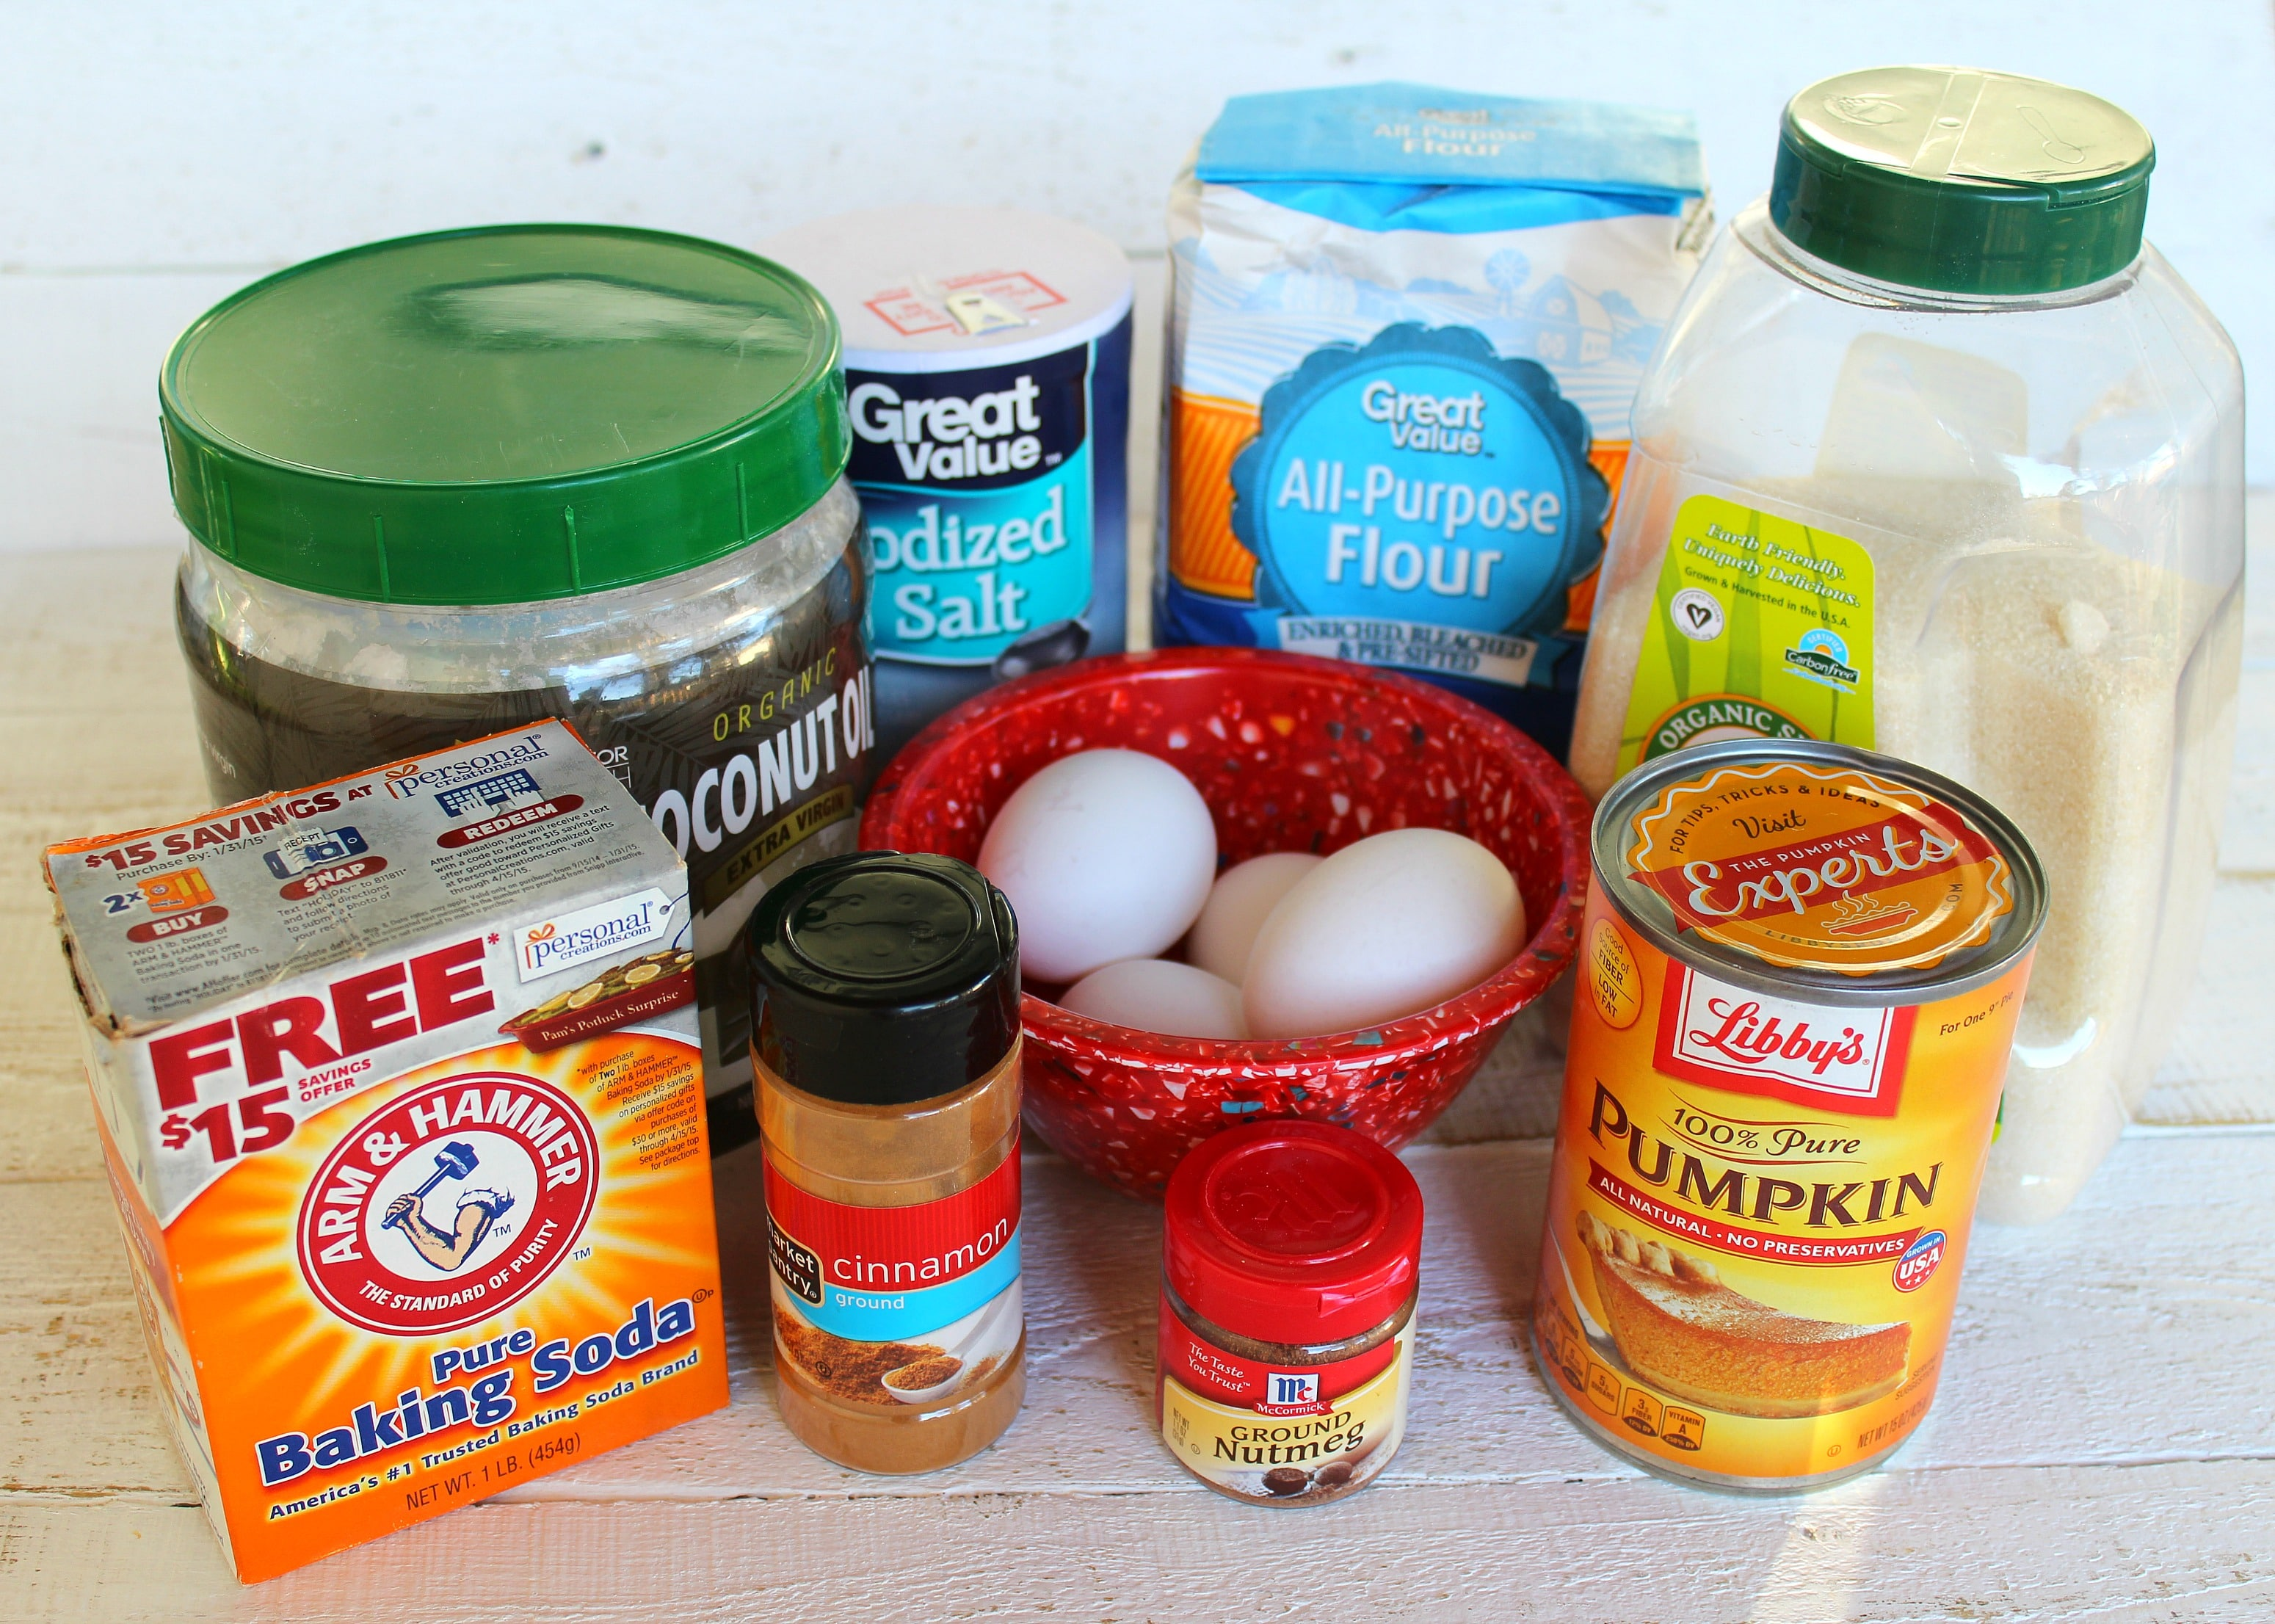 These are all the ingredients you need for this great pumpkin bread: baking soda, cinnamon, nutmeg, pumpkin, flour, salt, coconut oil, sugar and eggs.